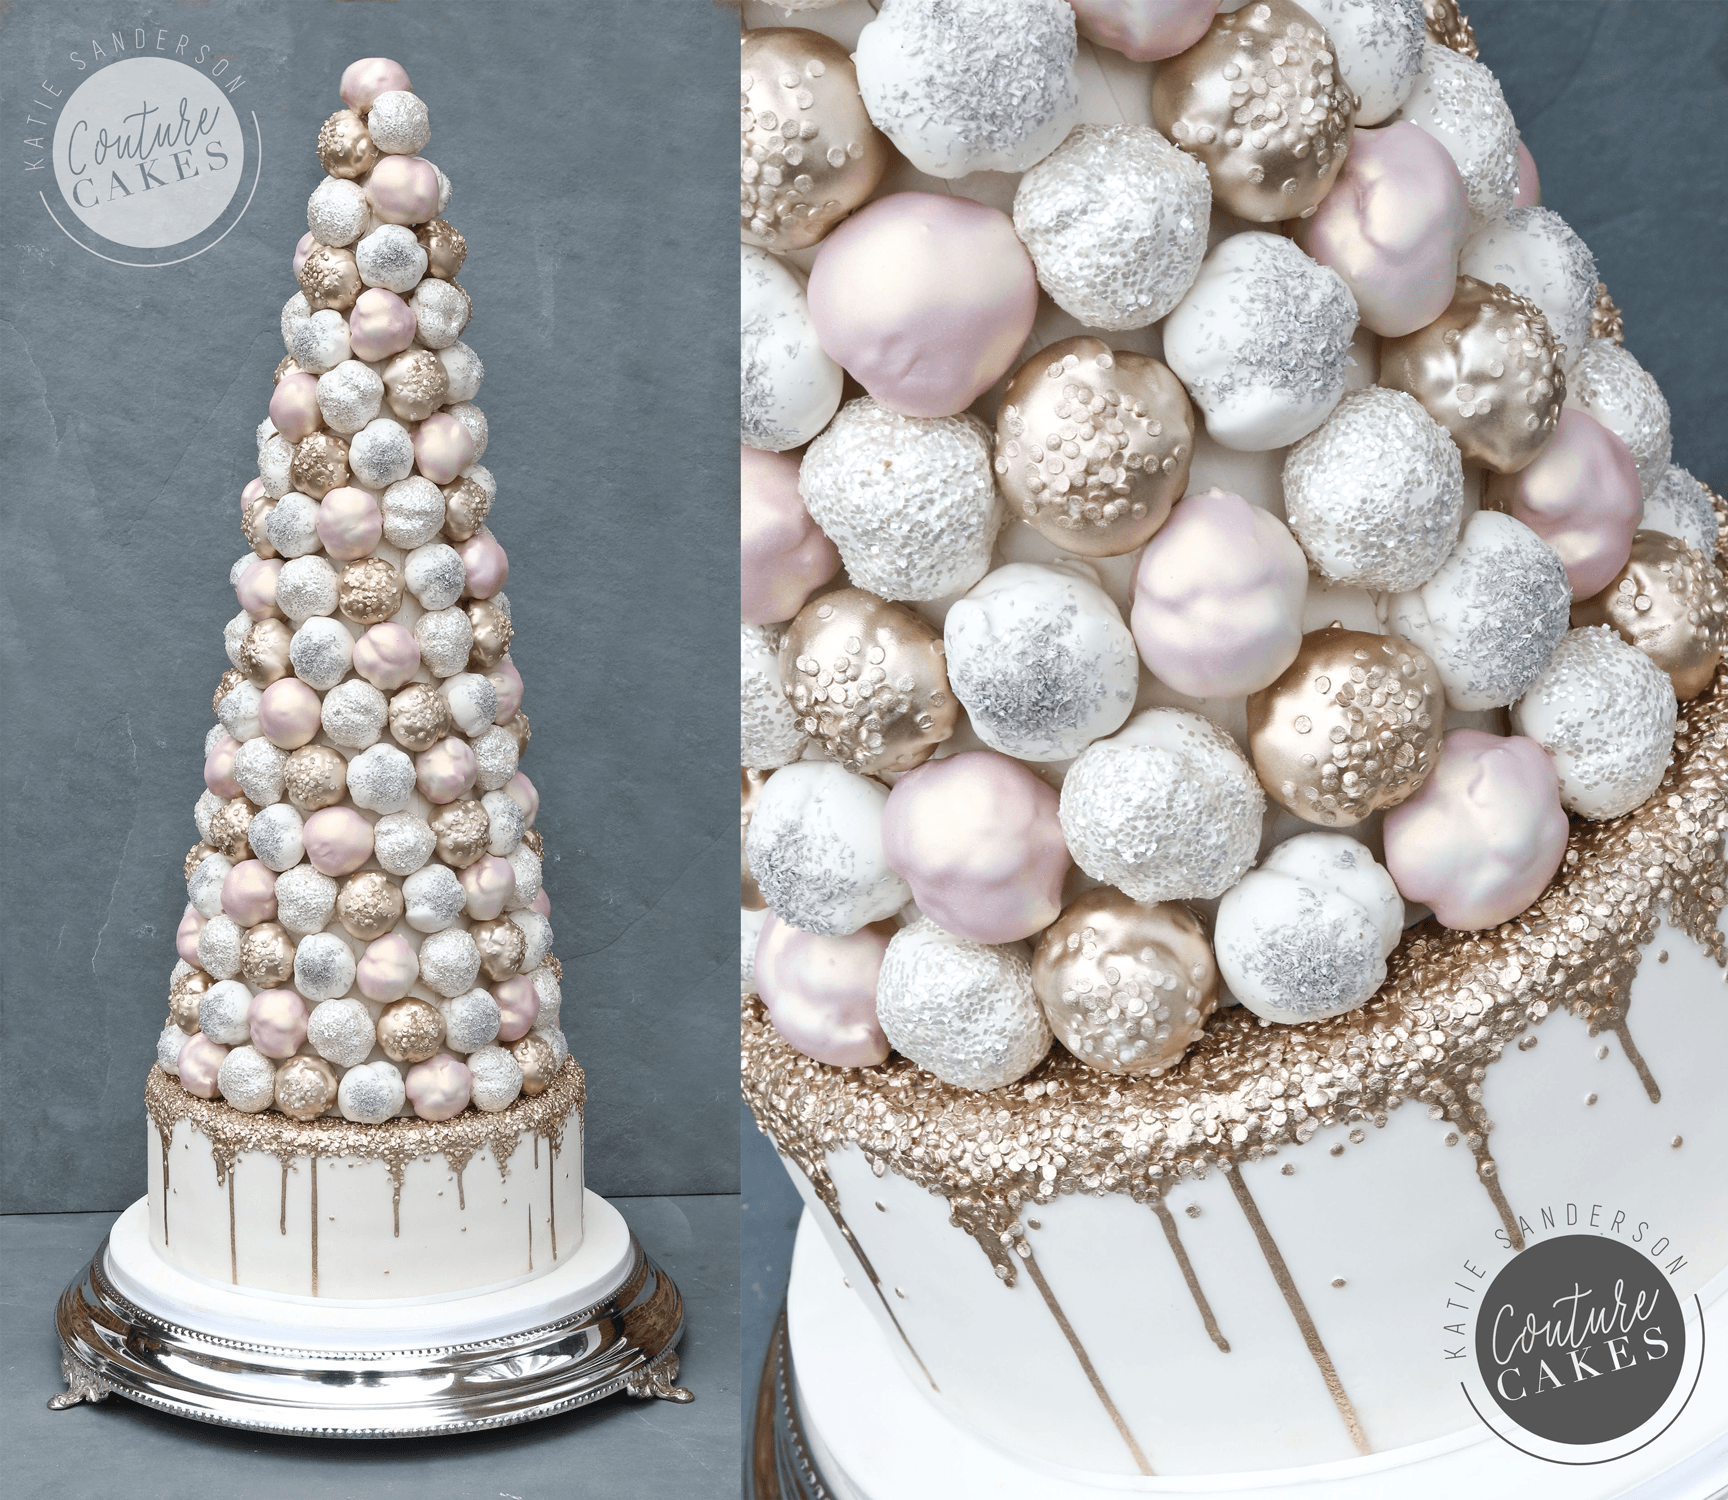 Price £395 (for 200 profiterole cone), plus £195 base tier cake